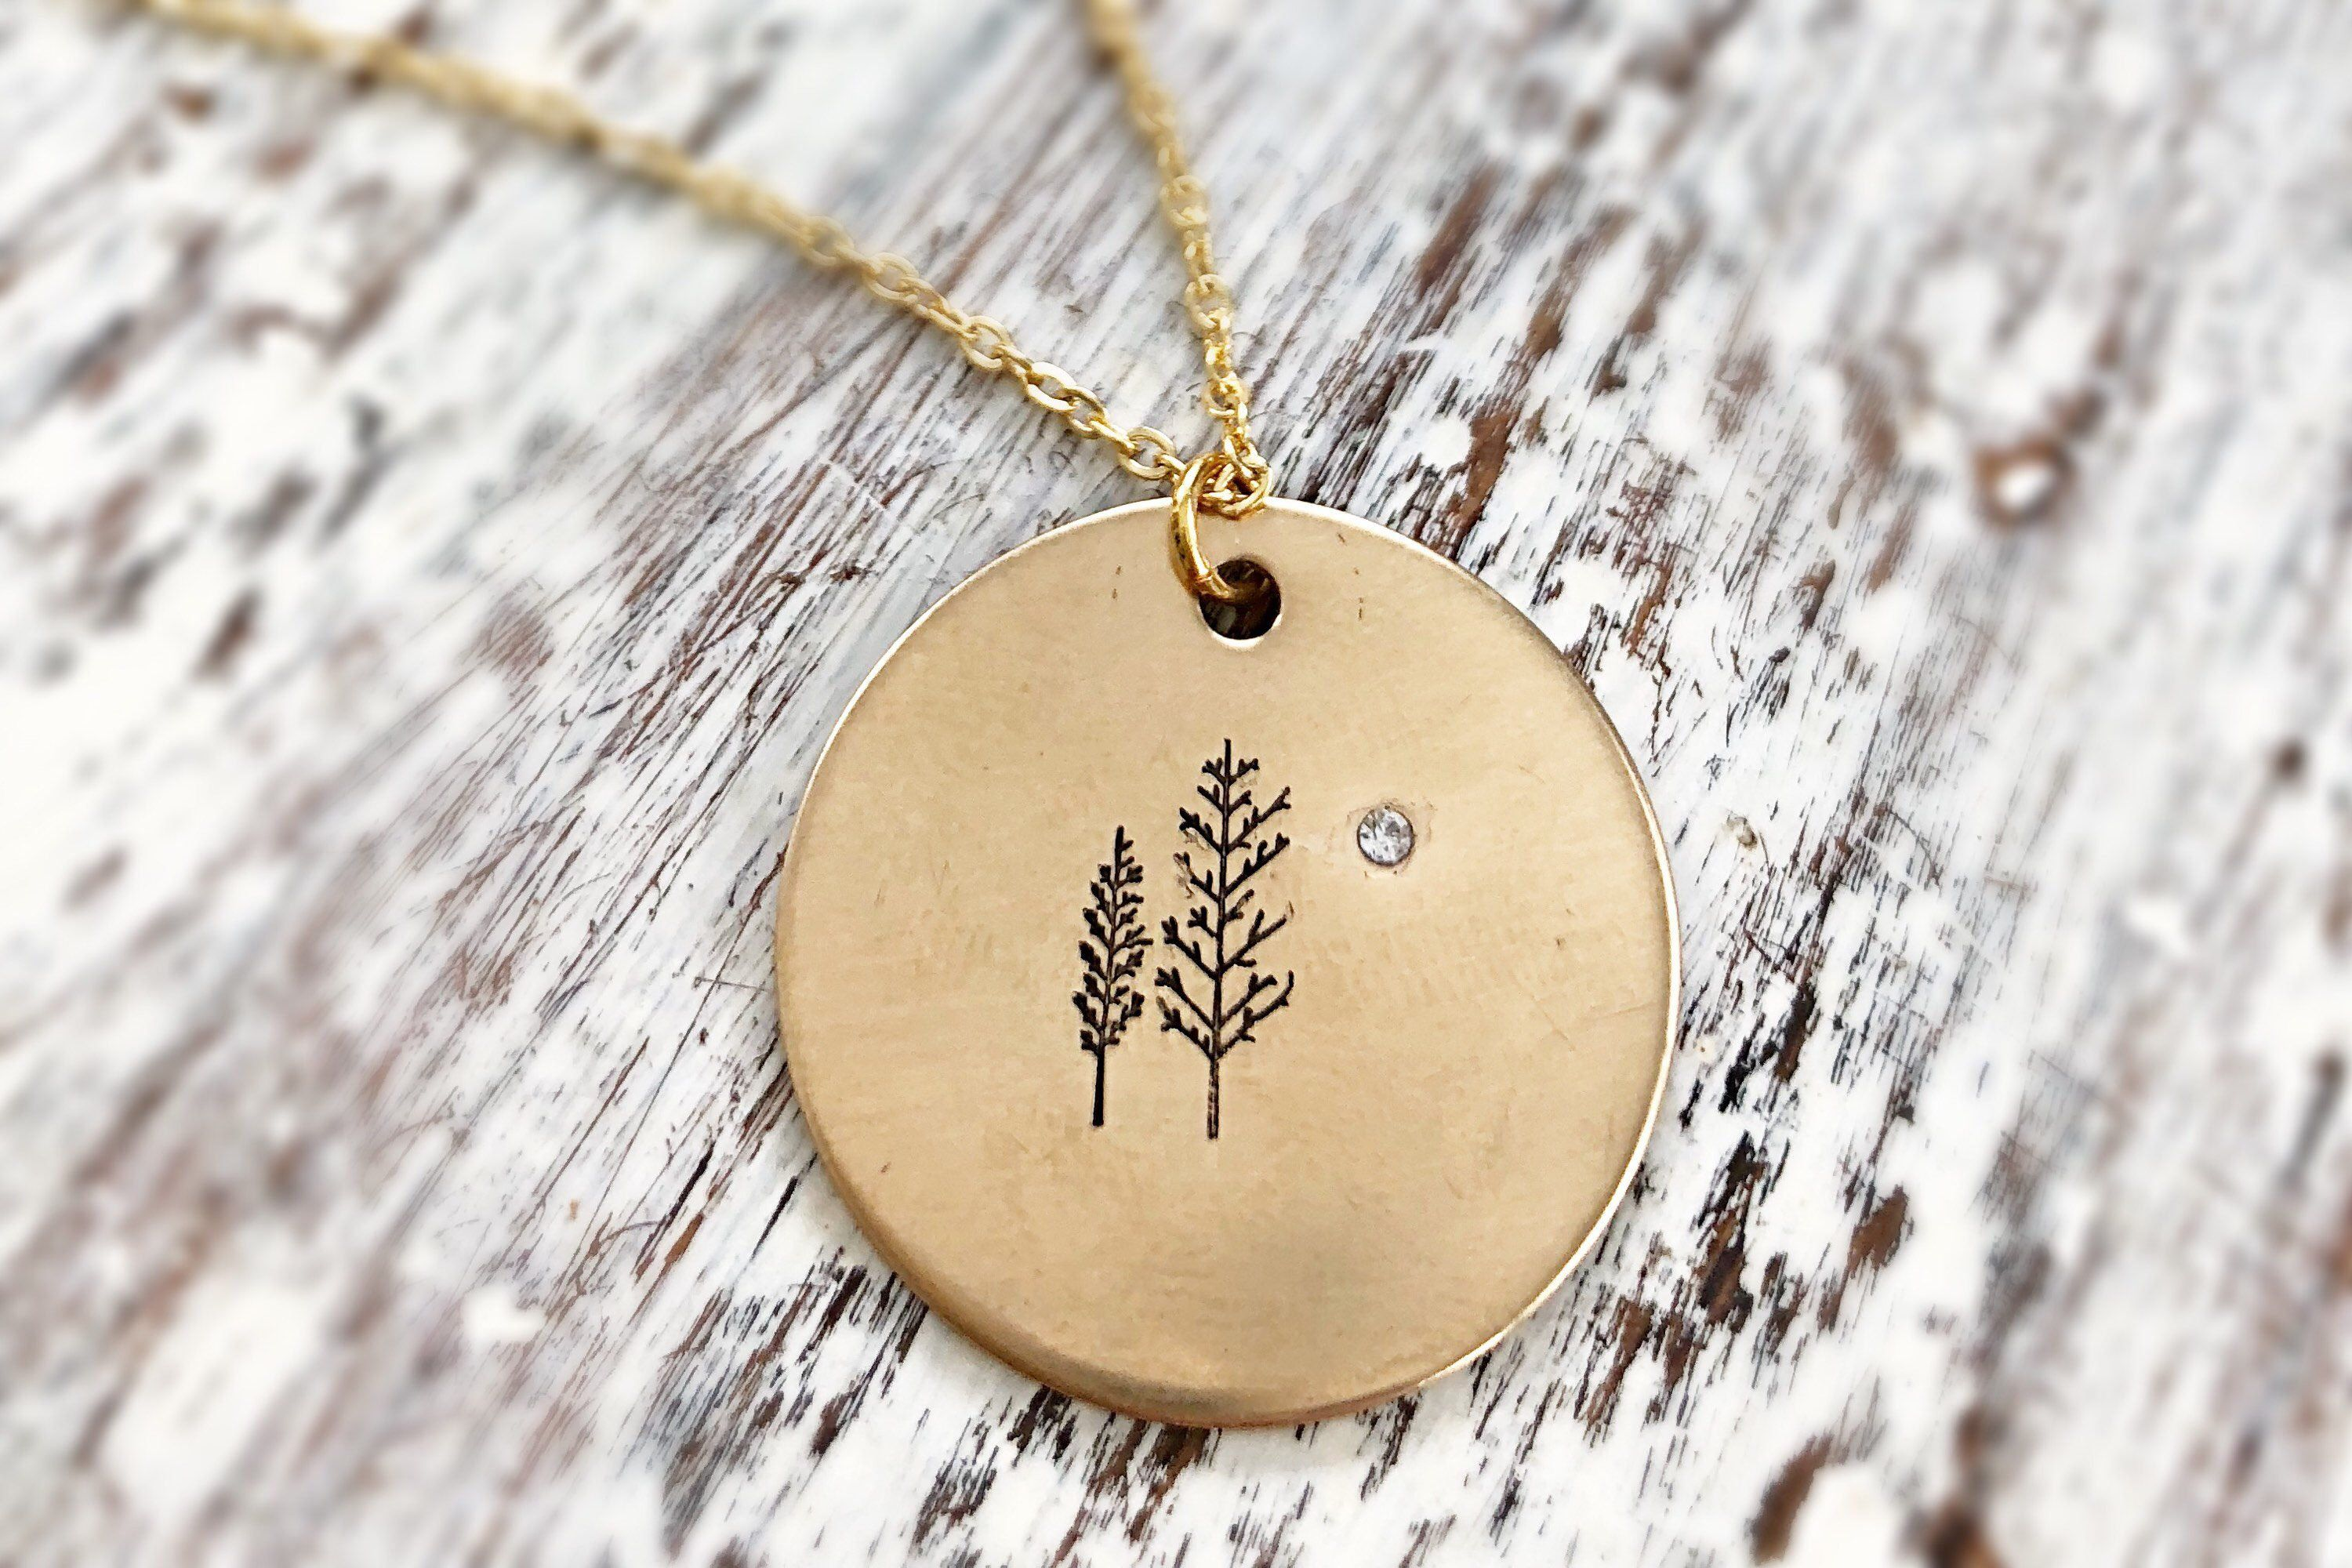 Mentoring necklace gold tree pendant necklace with